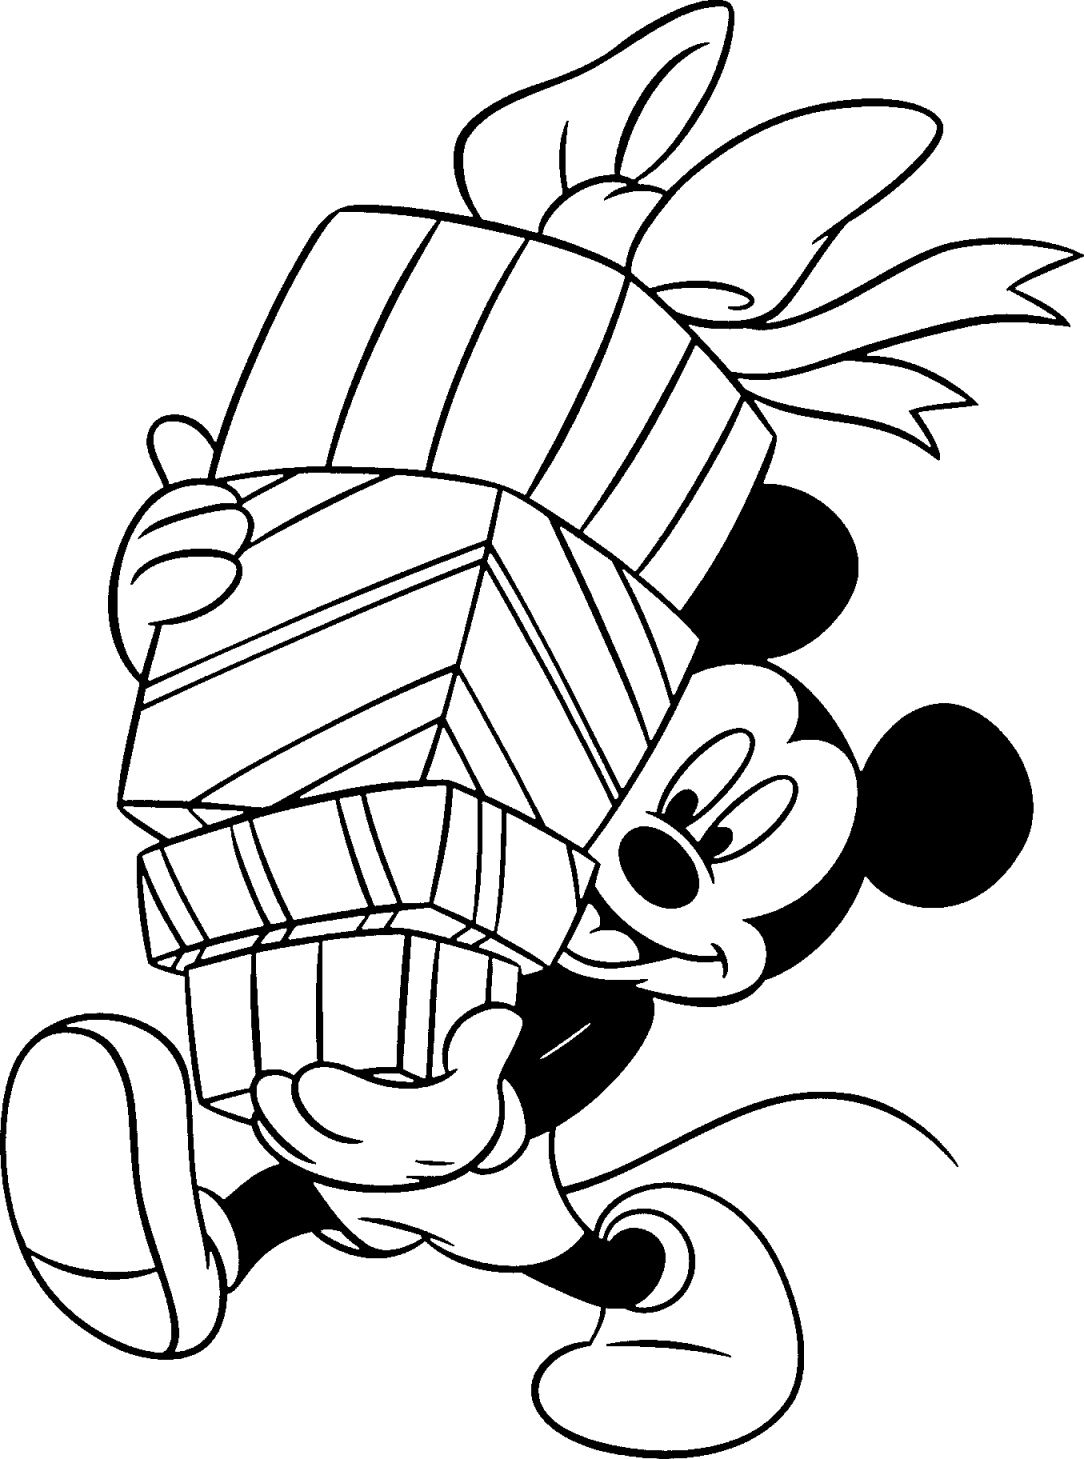 Free Disney Christmas Coloring Pages Printable With Painting Pinterest